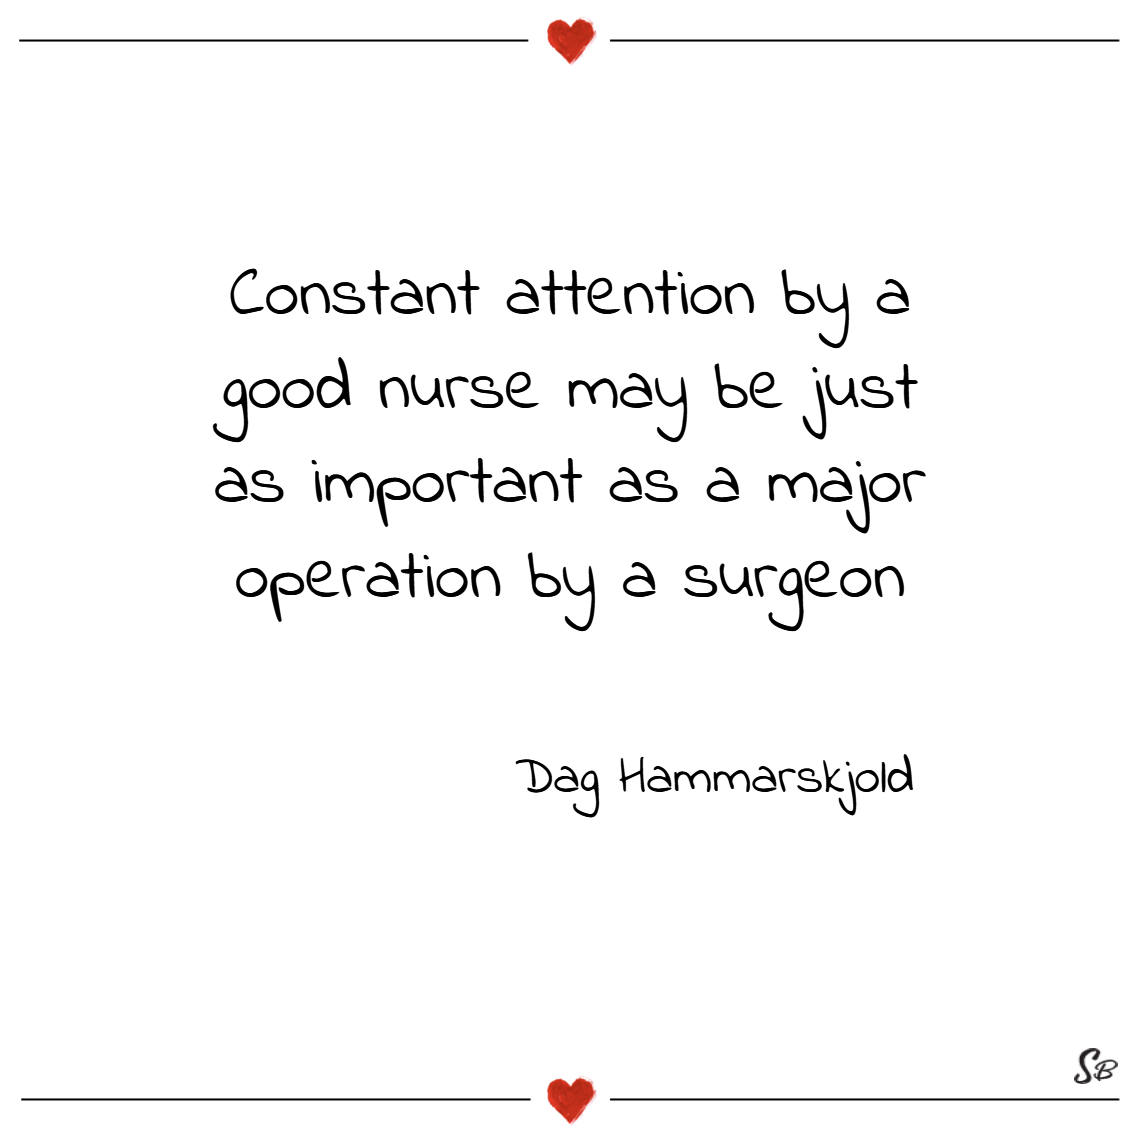 Constant attention by a good nurse may be just as impor